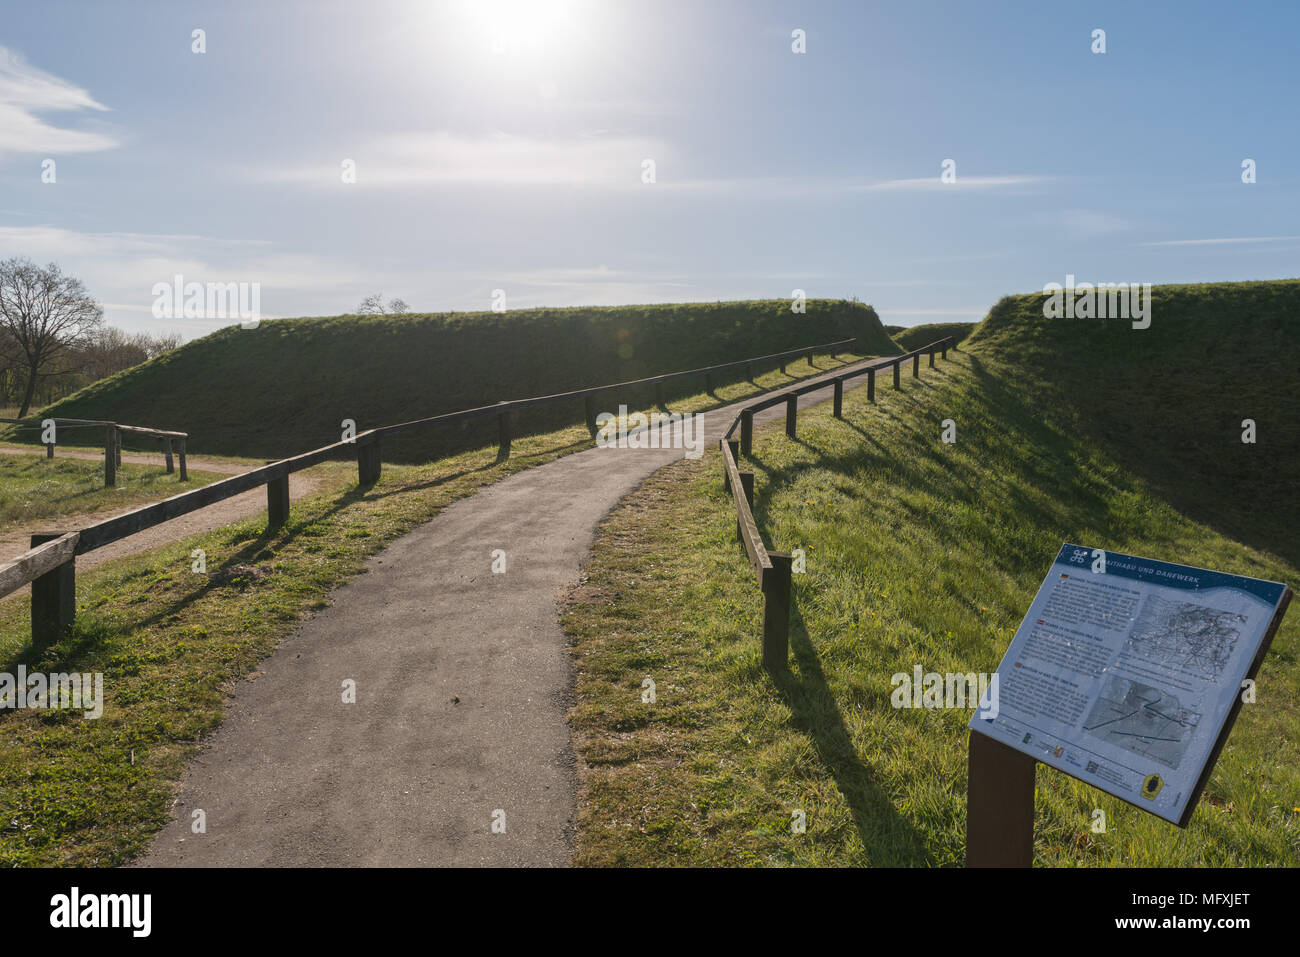 Valdemar´s Wall, built about the year 1060 by King Valdemar the Great of Denmark,Dannewerk, Schleswig-Holstein, Germany, Europe - Stock Image